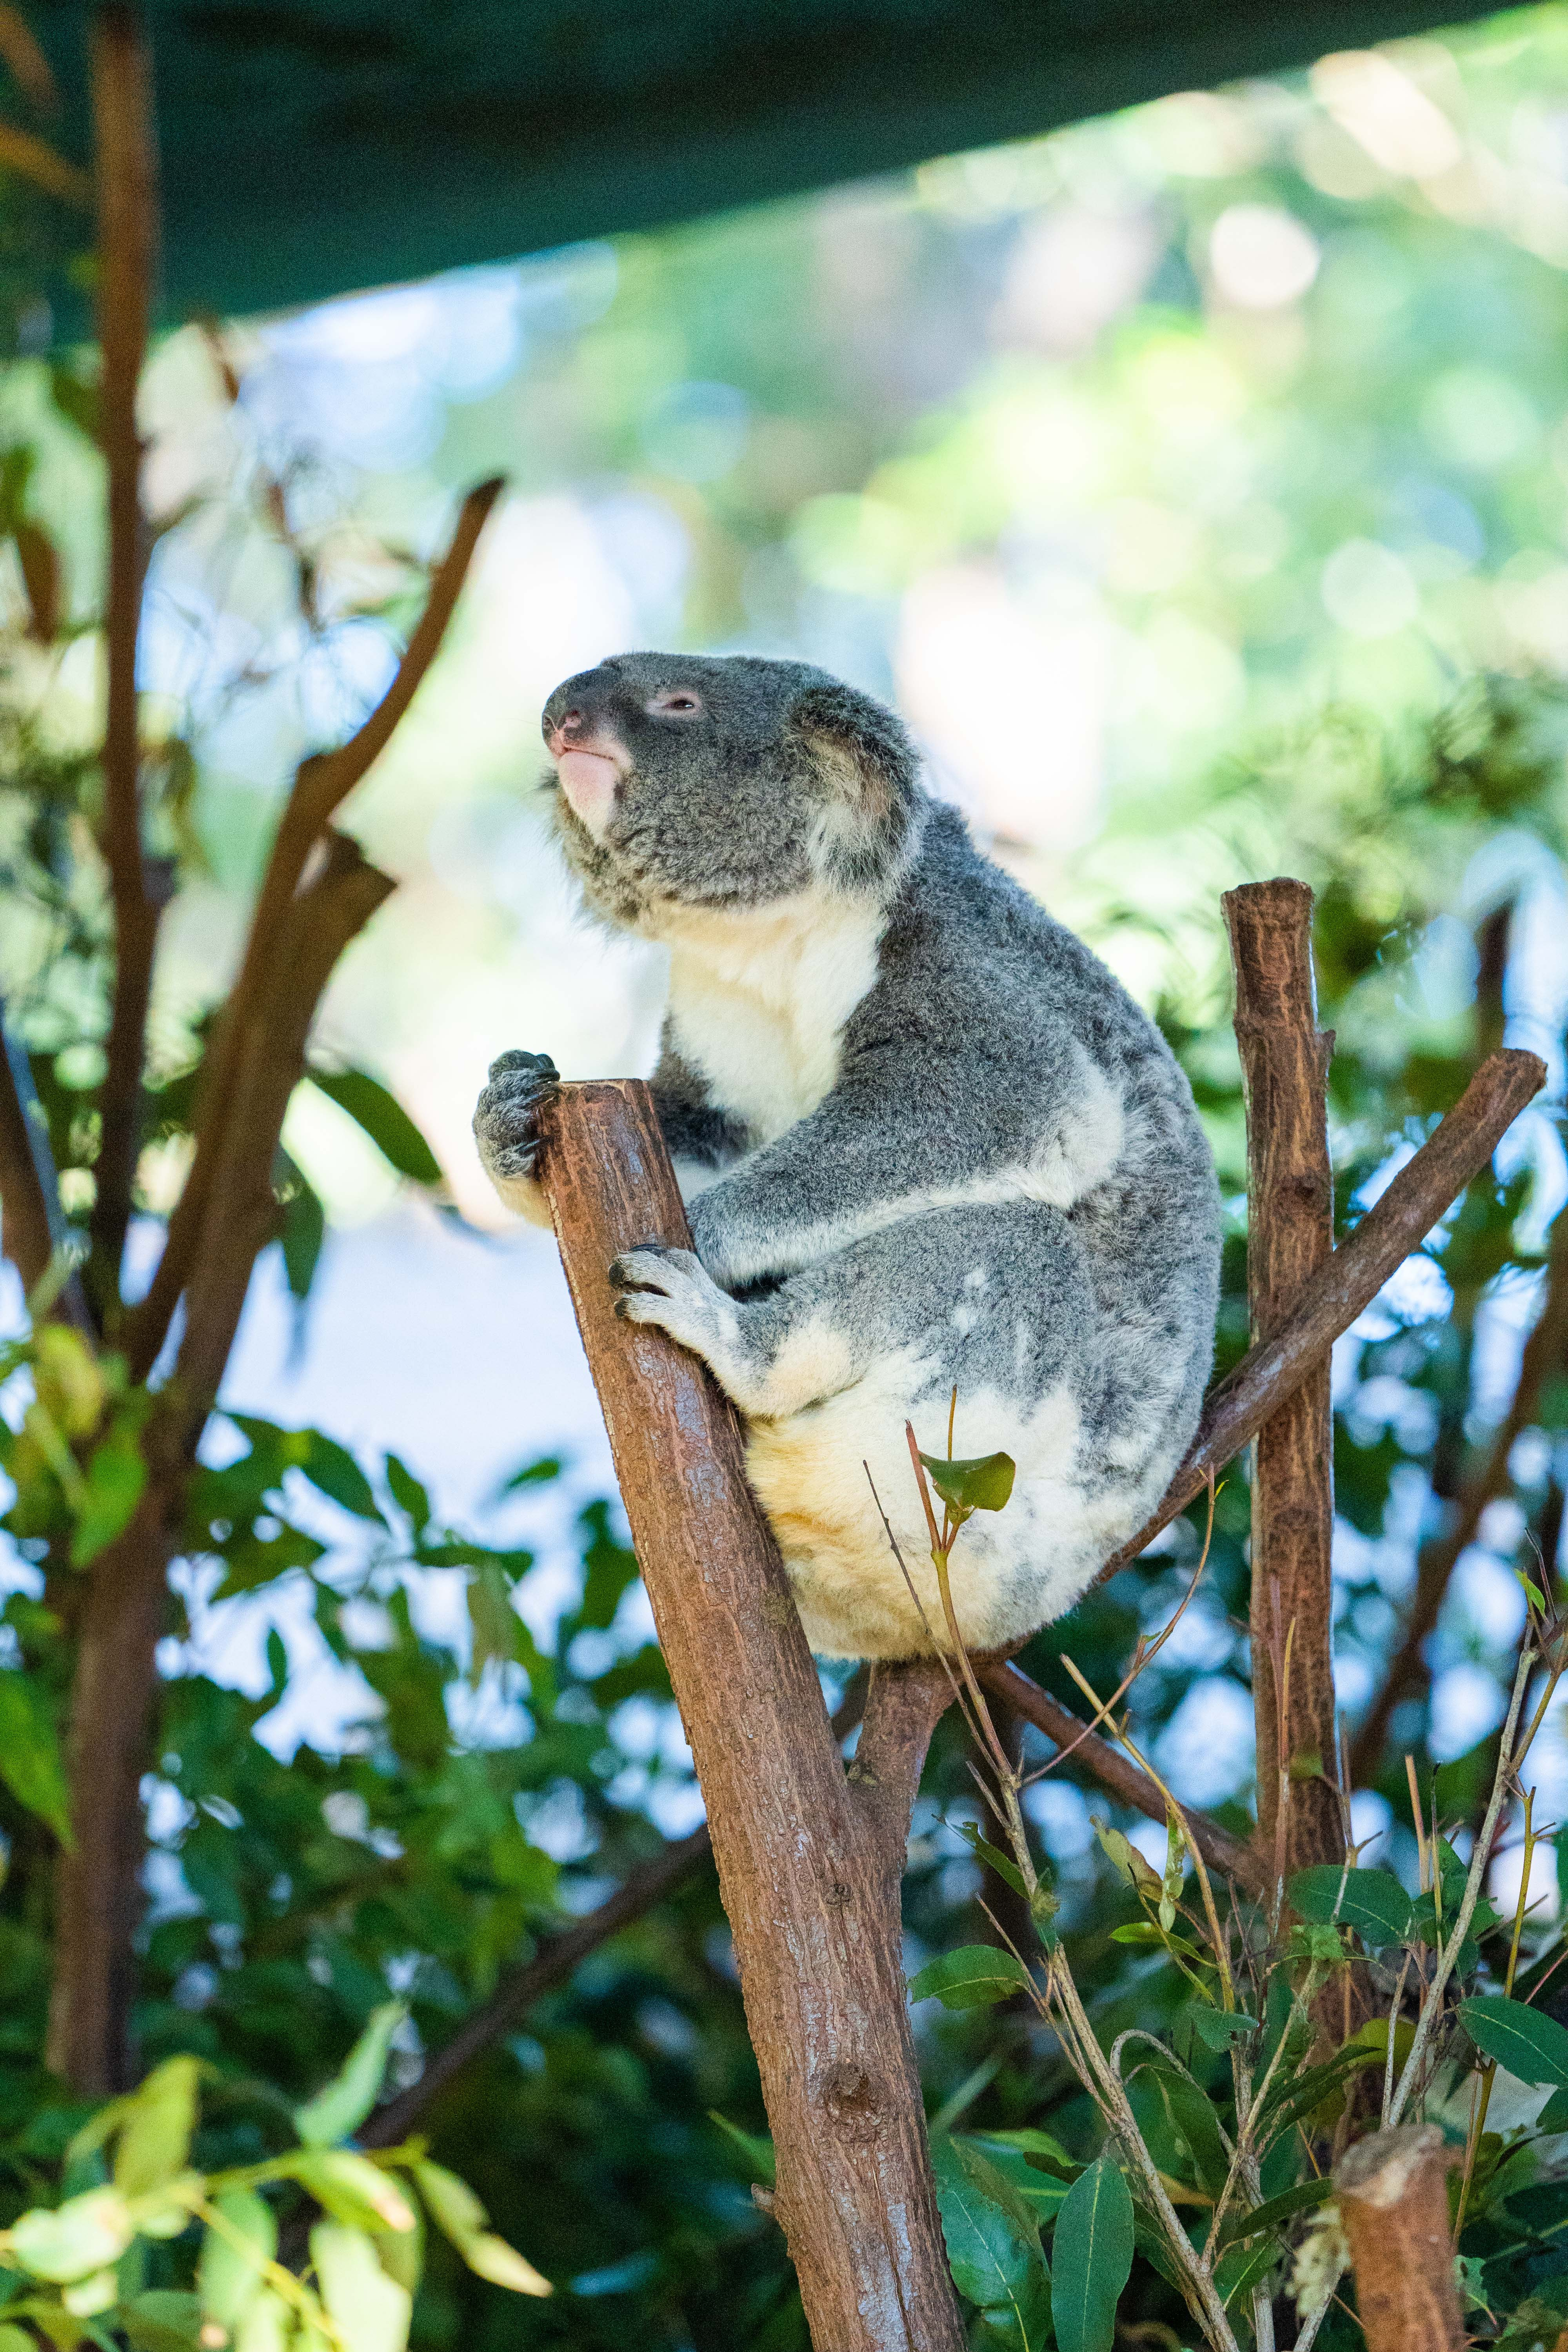 91133 download wallpaper Animals, Koala, Animal, Branches, Wood, Tree screensavers and pictures for free